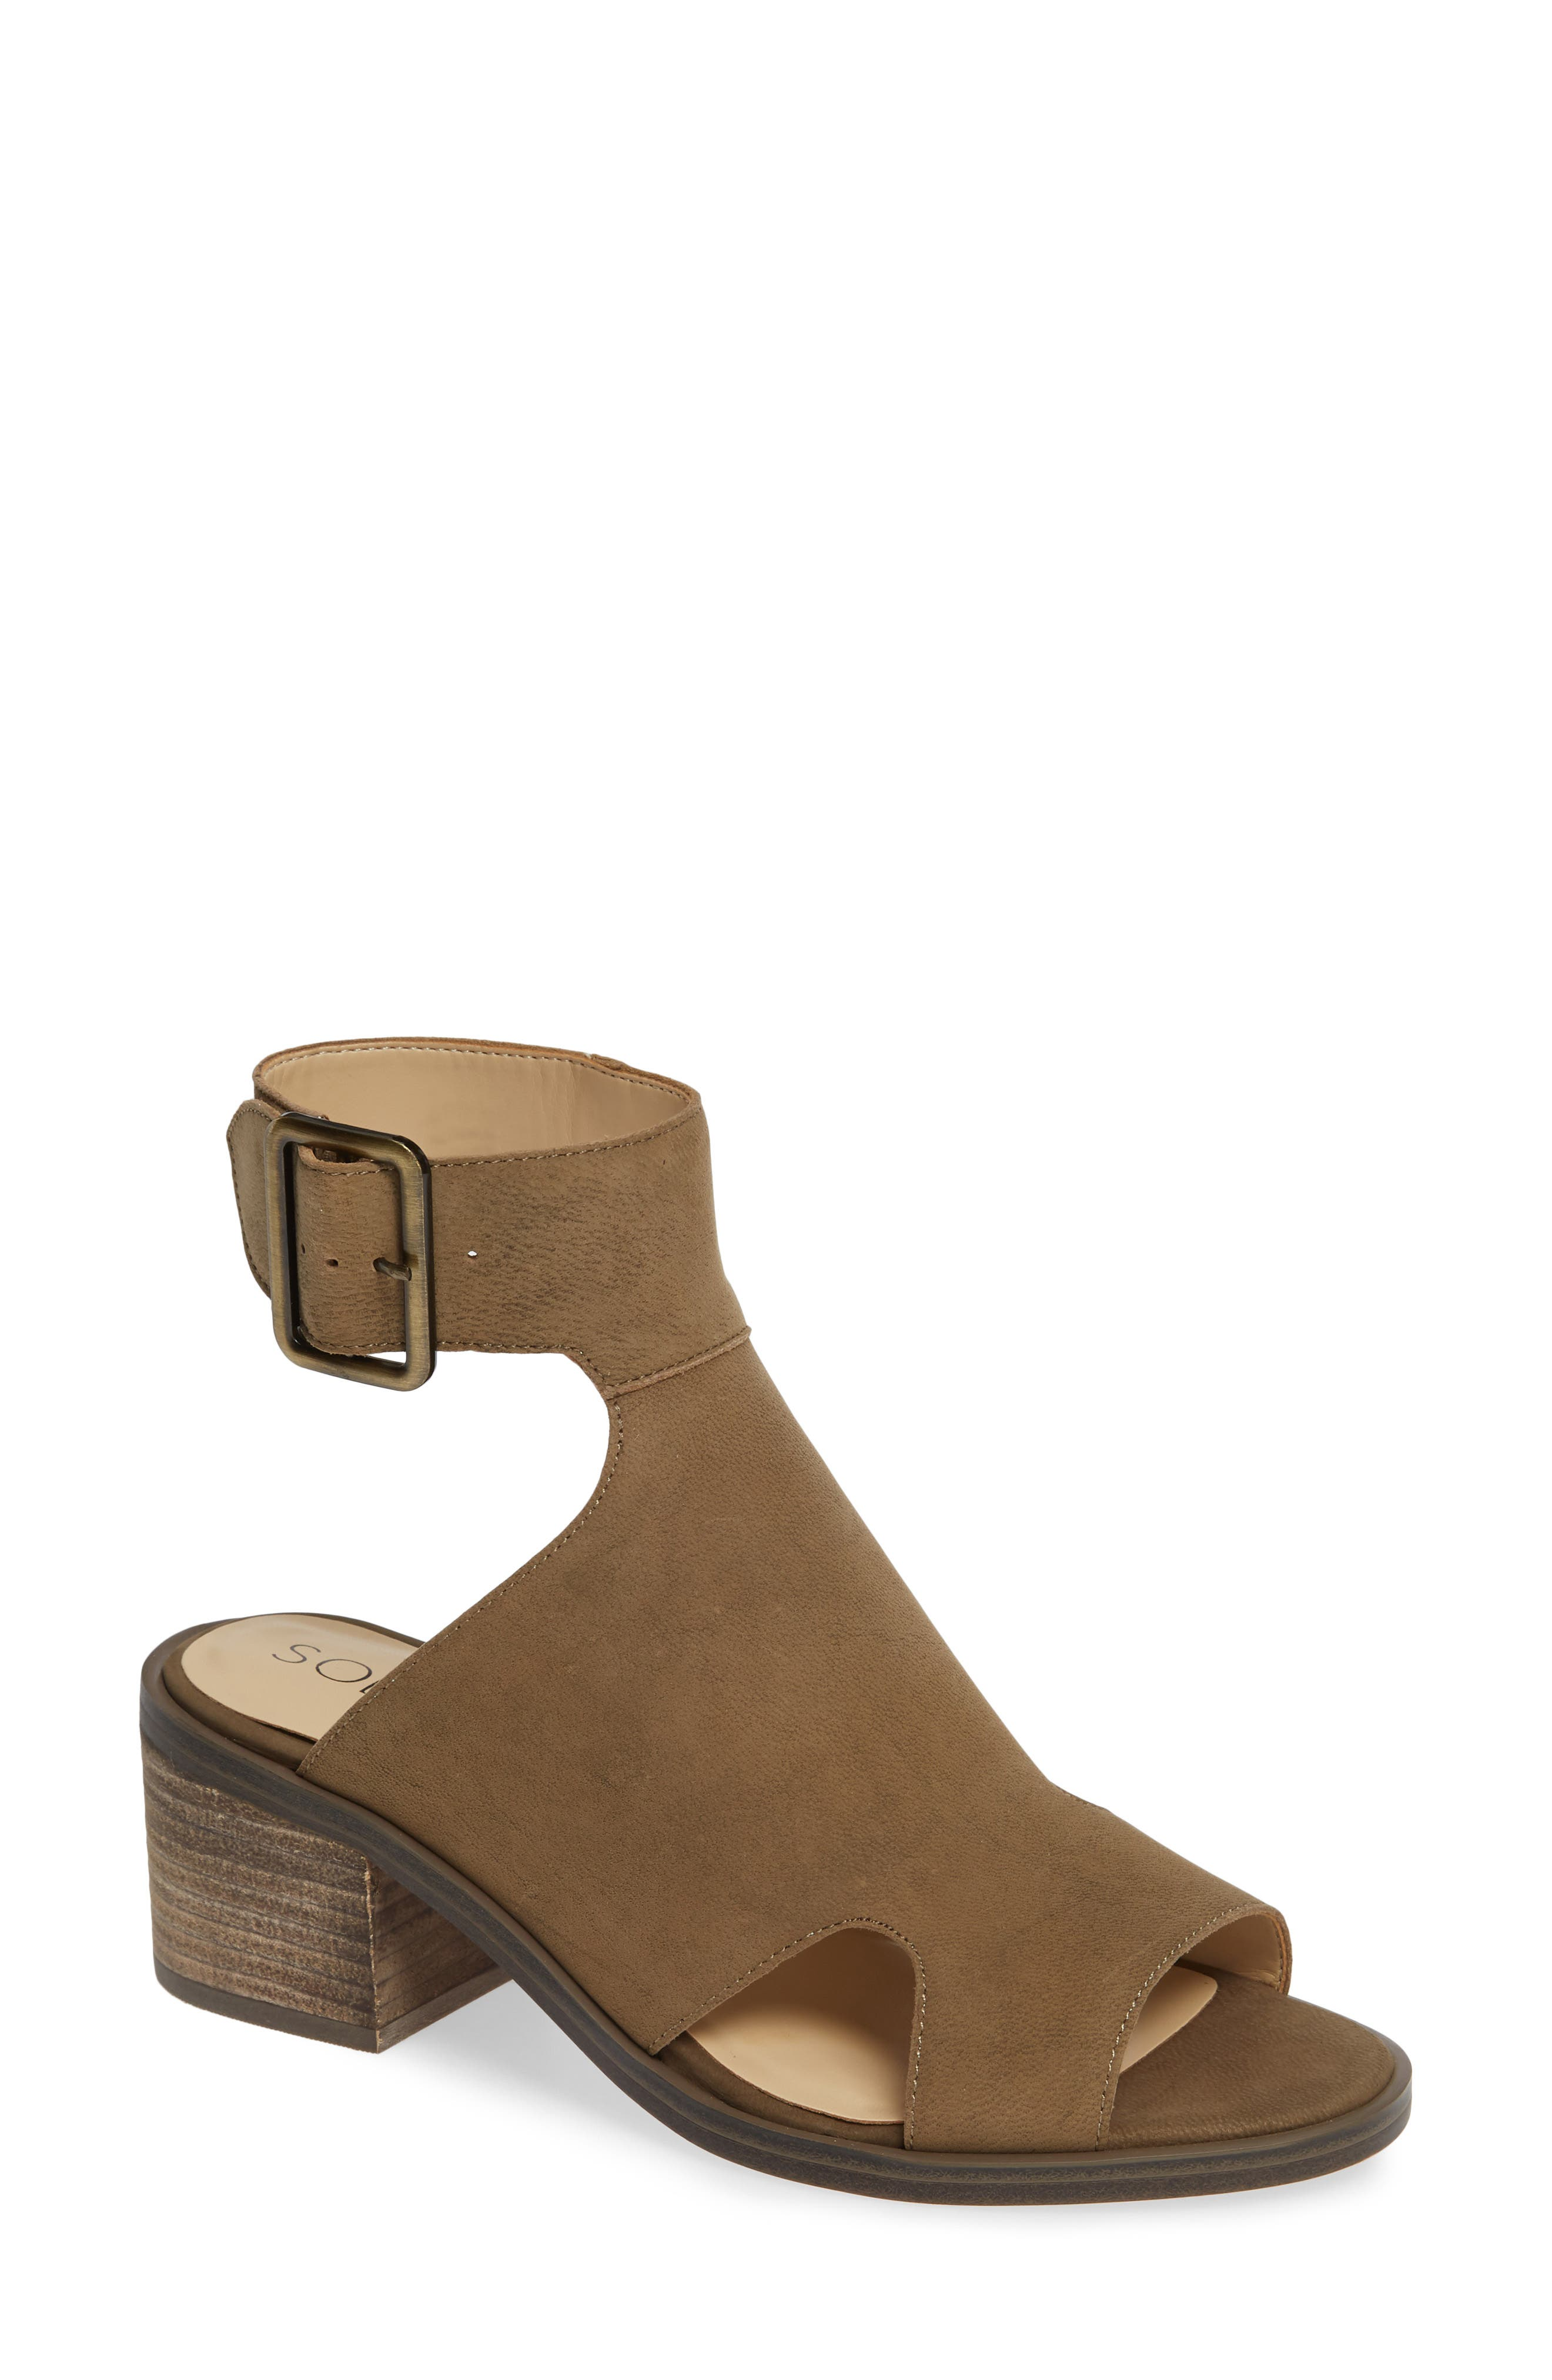 Tally Ankle Cuff Sandal,                         Main,                         color, ANTIQUE GREEN NUBUCK